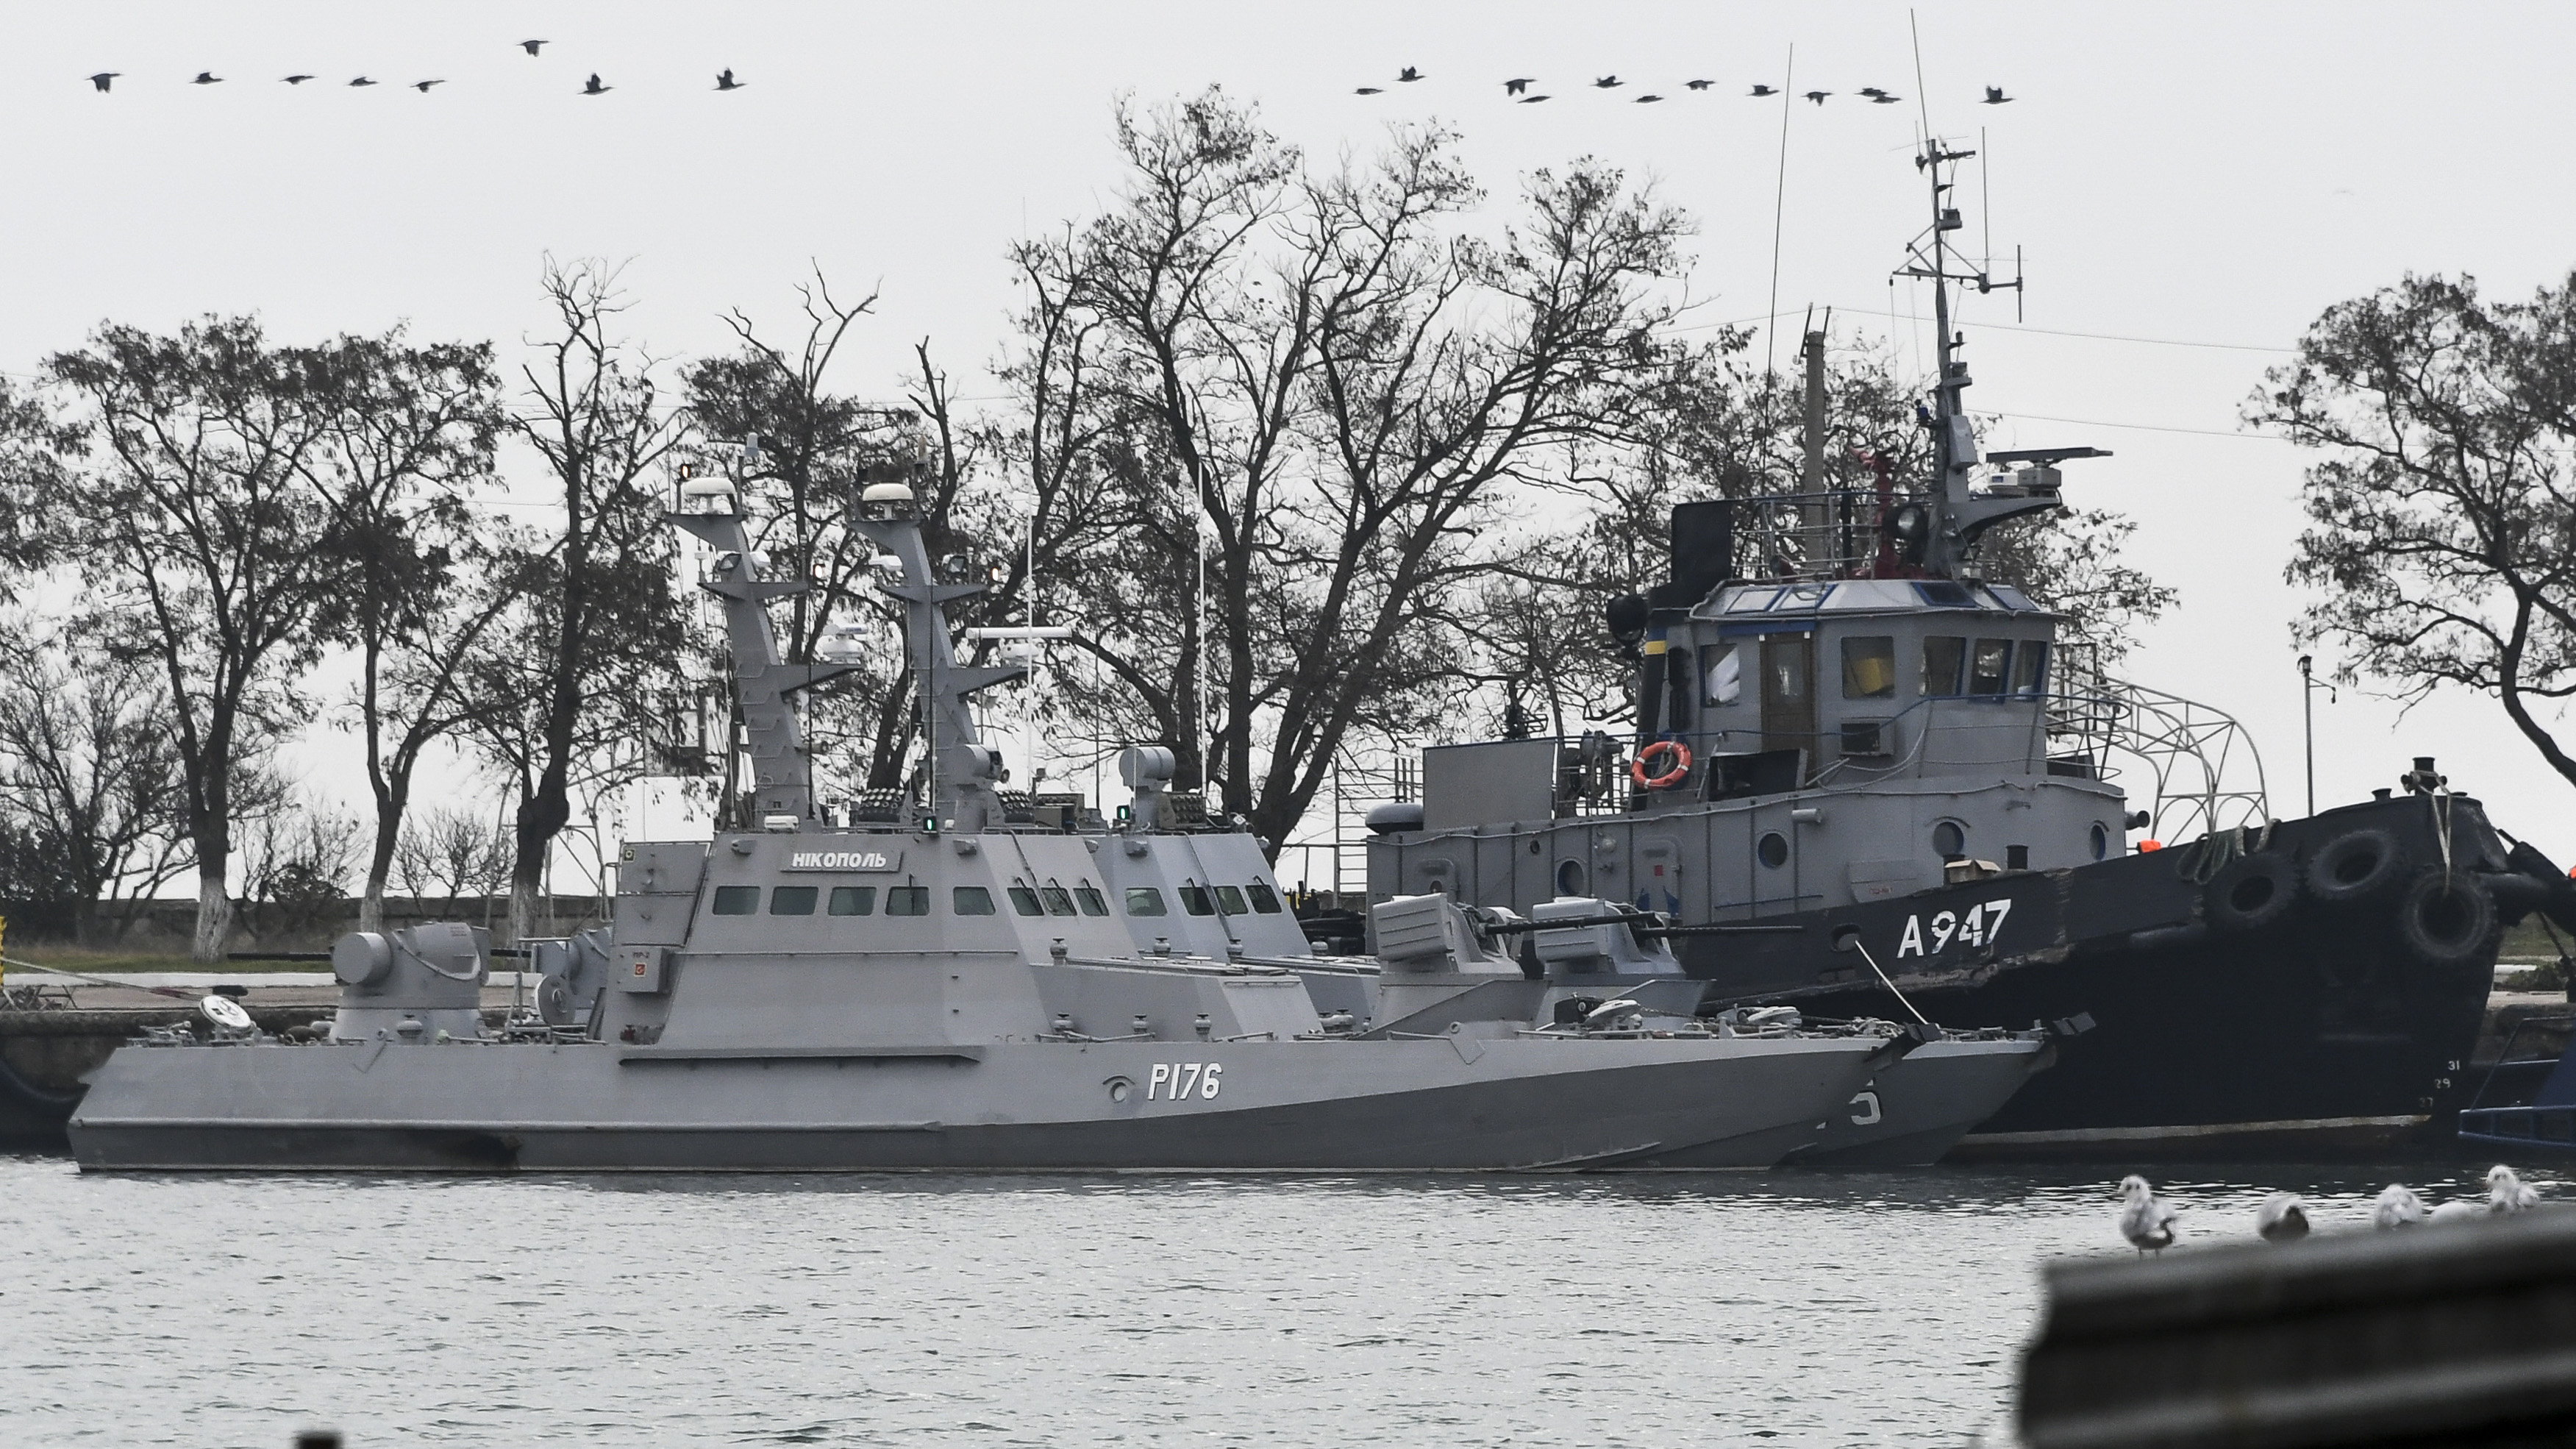 Three Ukrainian naval ships are seen at dock the day after being seized by Russian forces on Sunday, Nov. 25, 2018, in Kerch, Crimea, The Ukrainian parliament is set to consider a presidential request for the introduction of martial law in Ukraine following an incident in which Russian coast guard ships fired on the two Ukrainian navy gunboats and tugboat. (AP Photo)